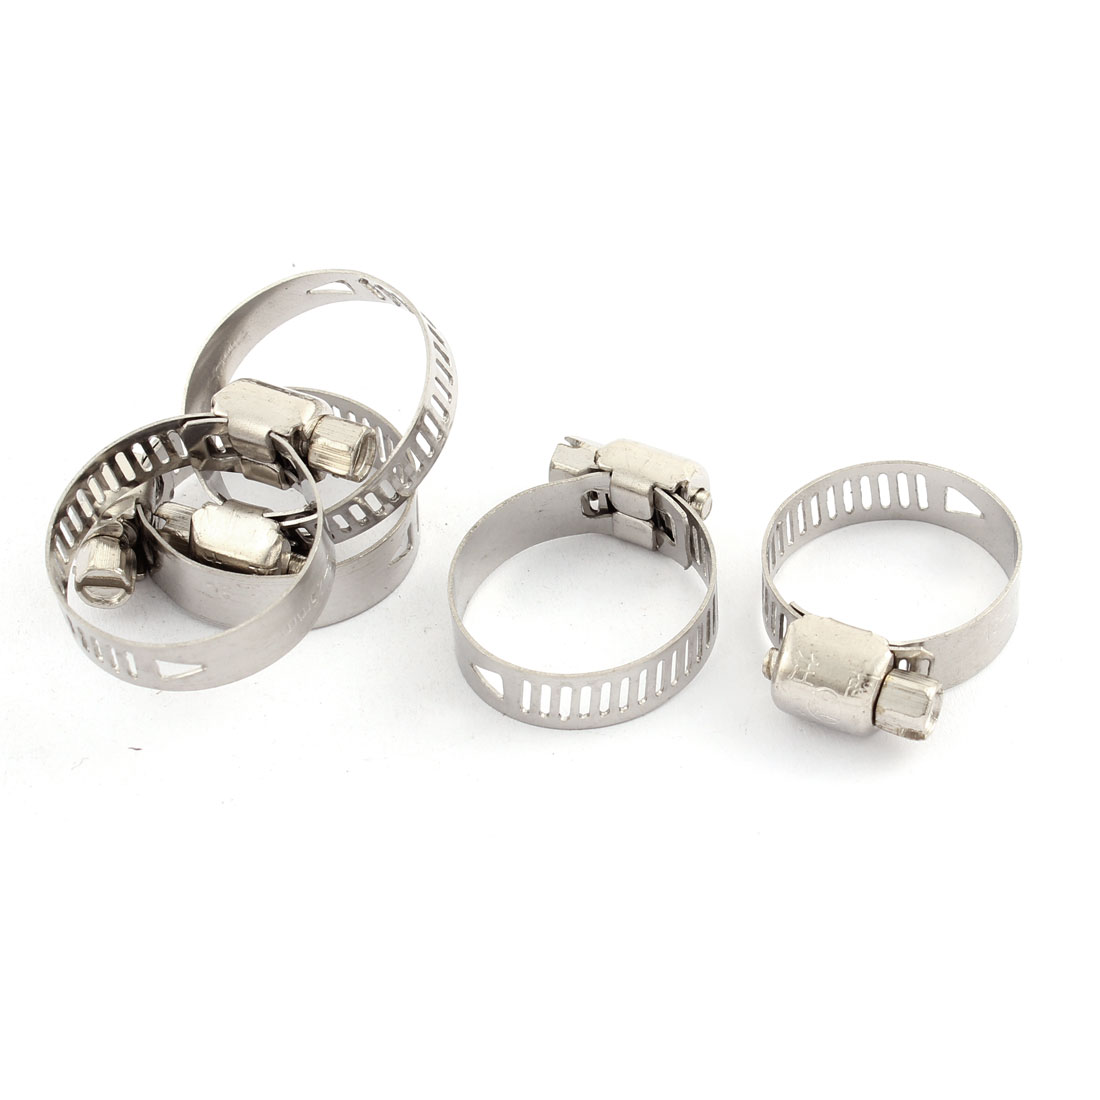 Adjustable 16-25mm Range Band Stainless Steel Wire Pipe Hose Clip Clamp 5 Pcs